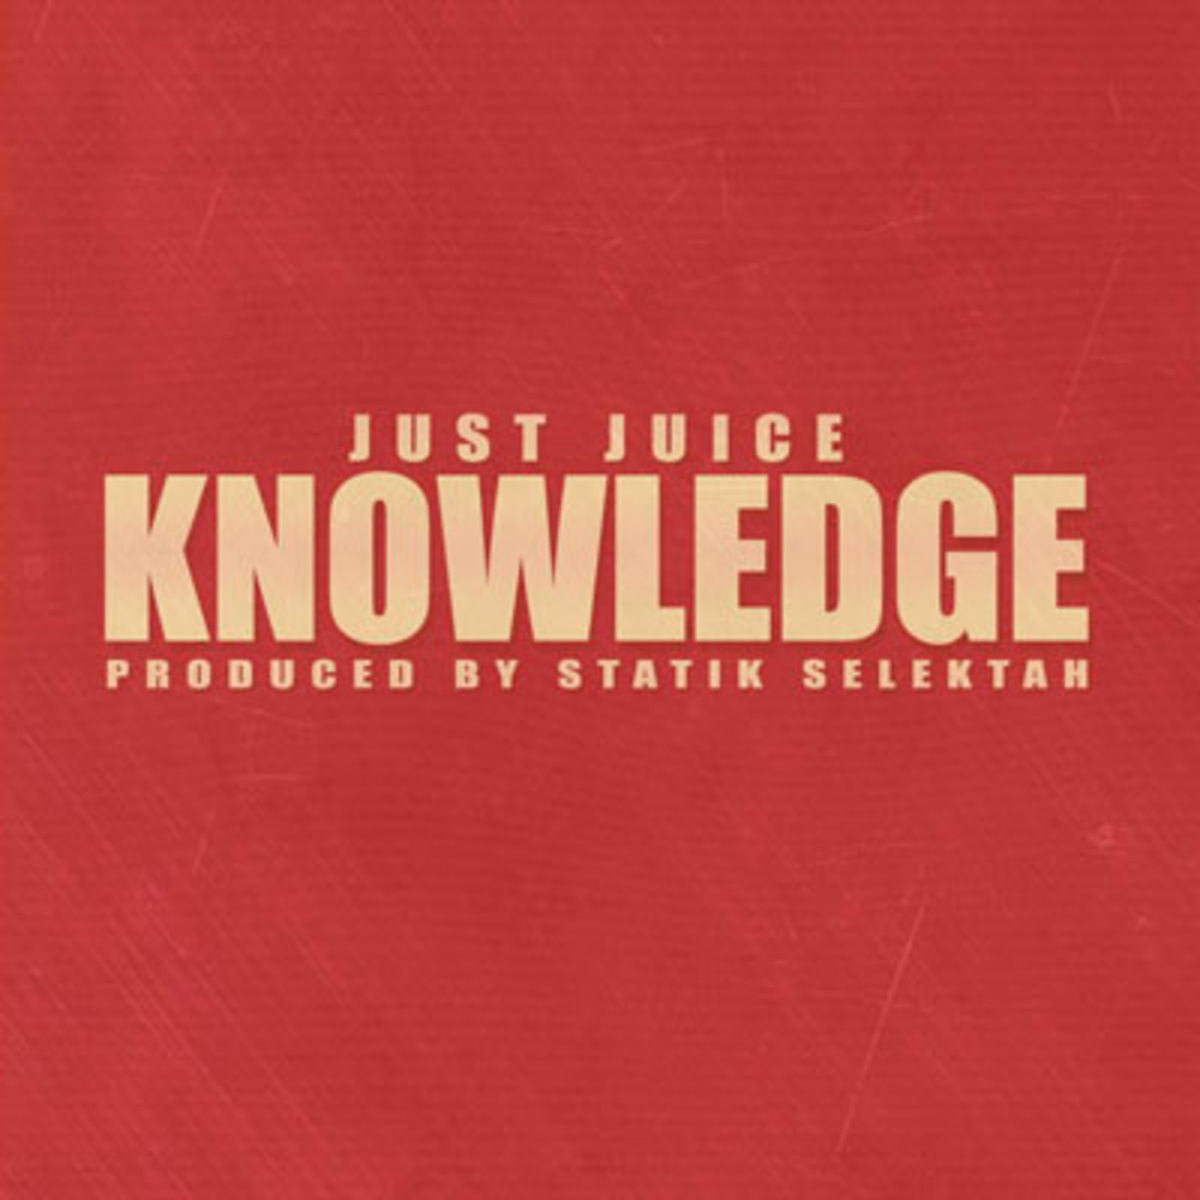 justjuice-knowledge.jpg